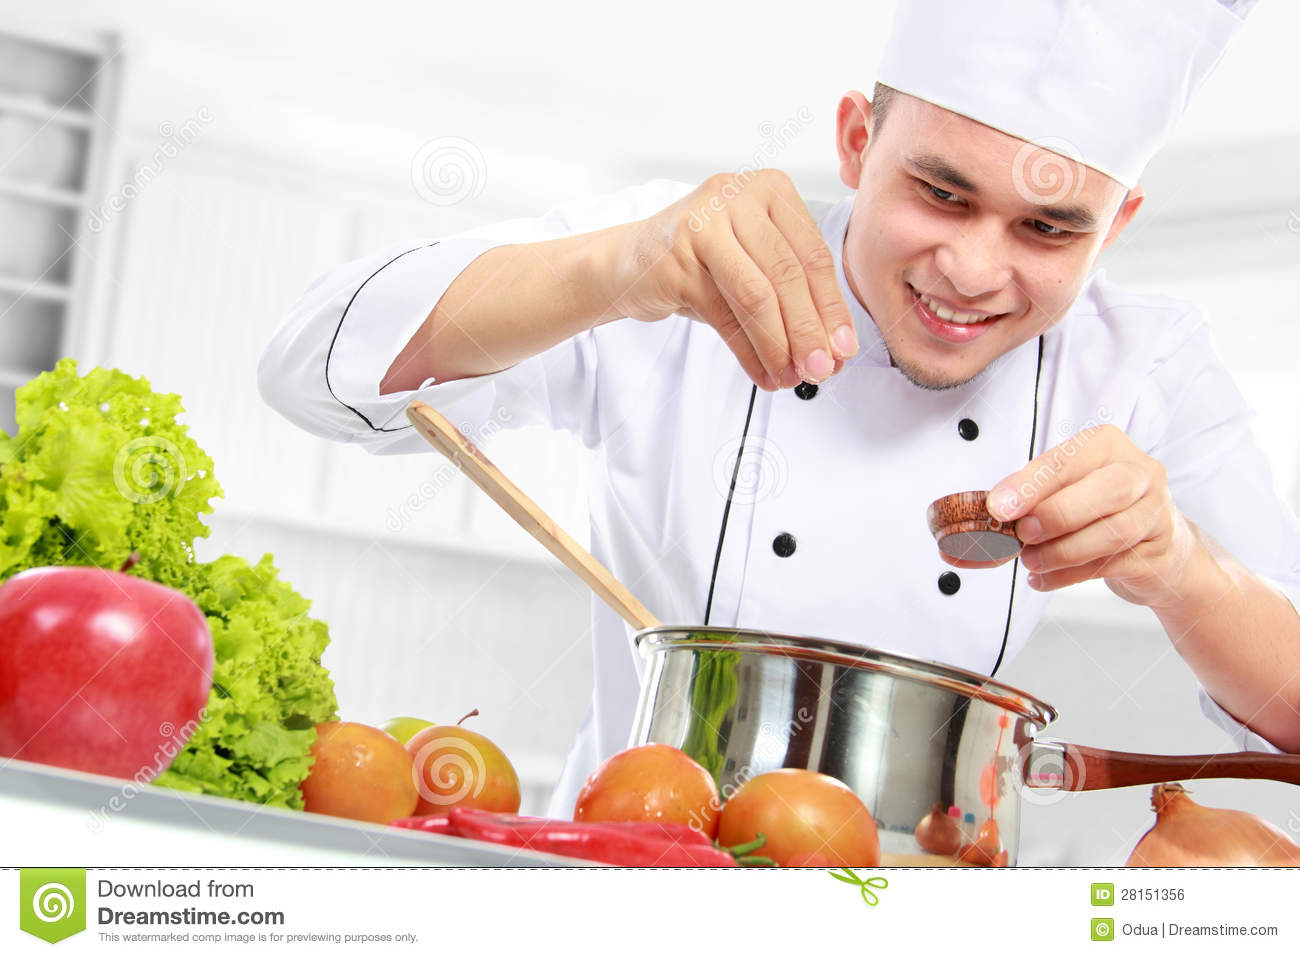 Male Chef Cooking Royalty Free Stock Image - Image: 28151356